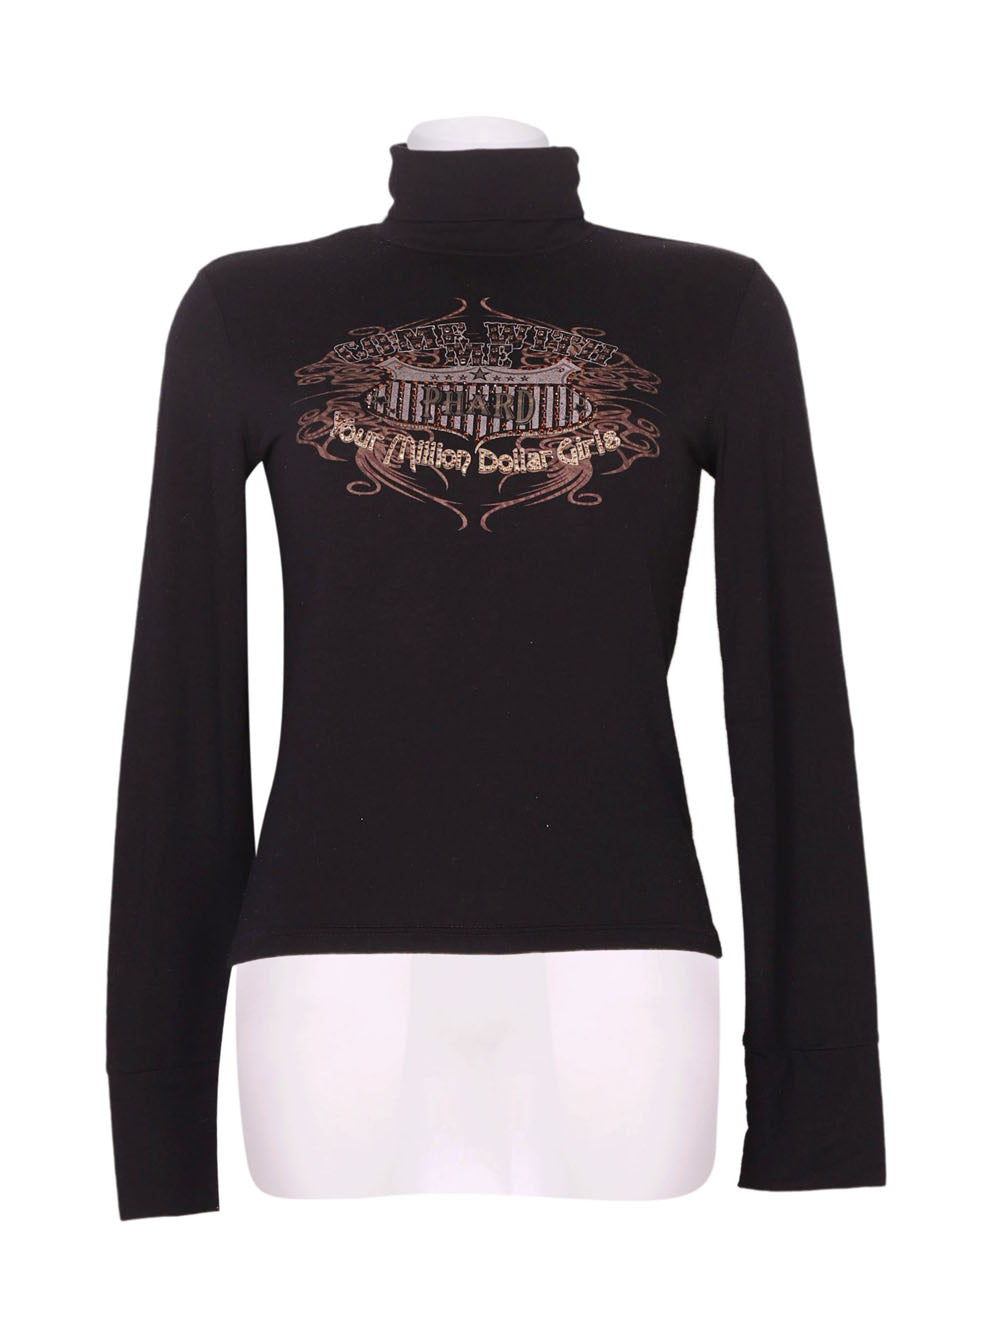 Front photo of Preloved Phard Black Woman's long sleeved shirt - size 8/S